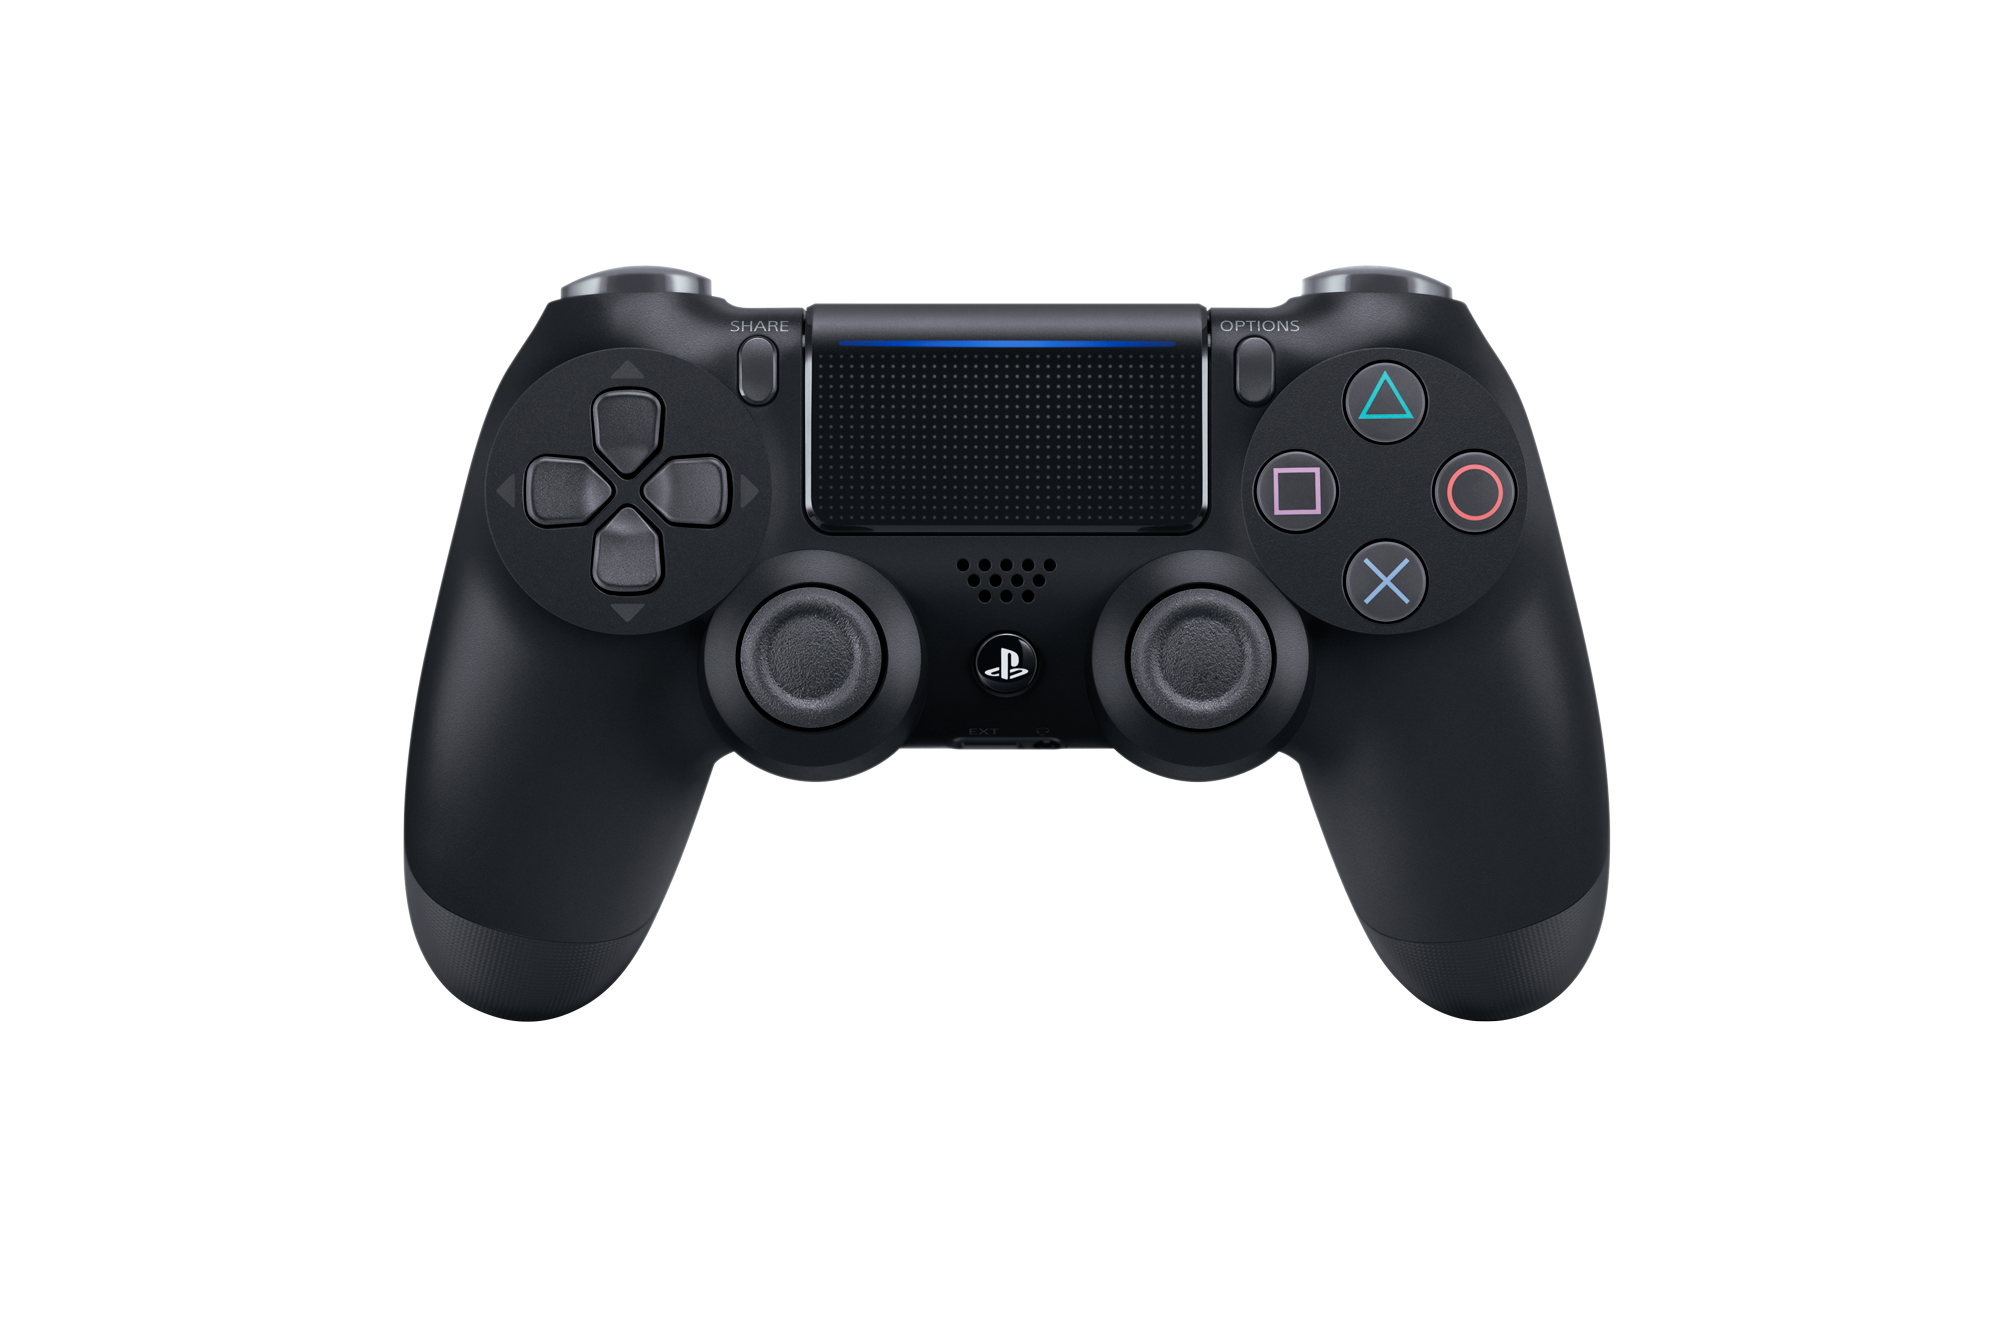 Геймпад new Sony PlayStation DualShock 4 (PS4)